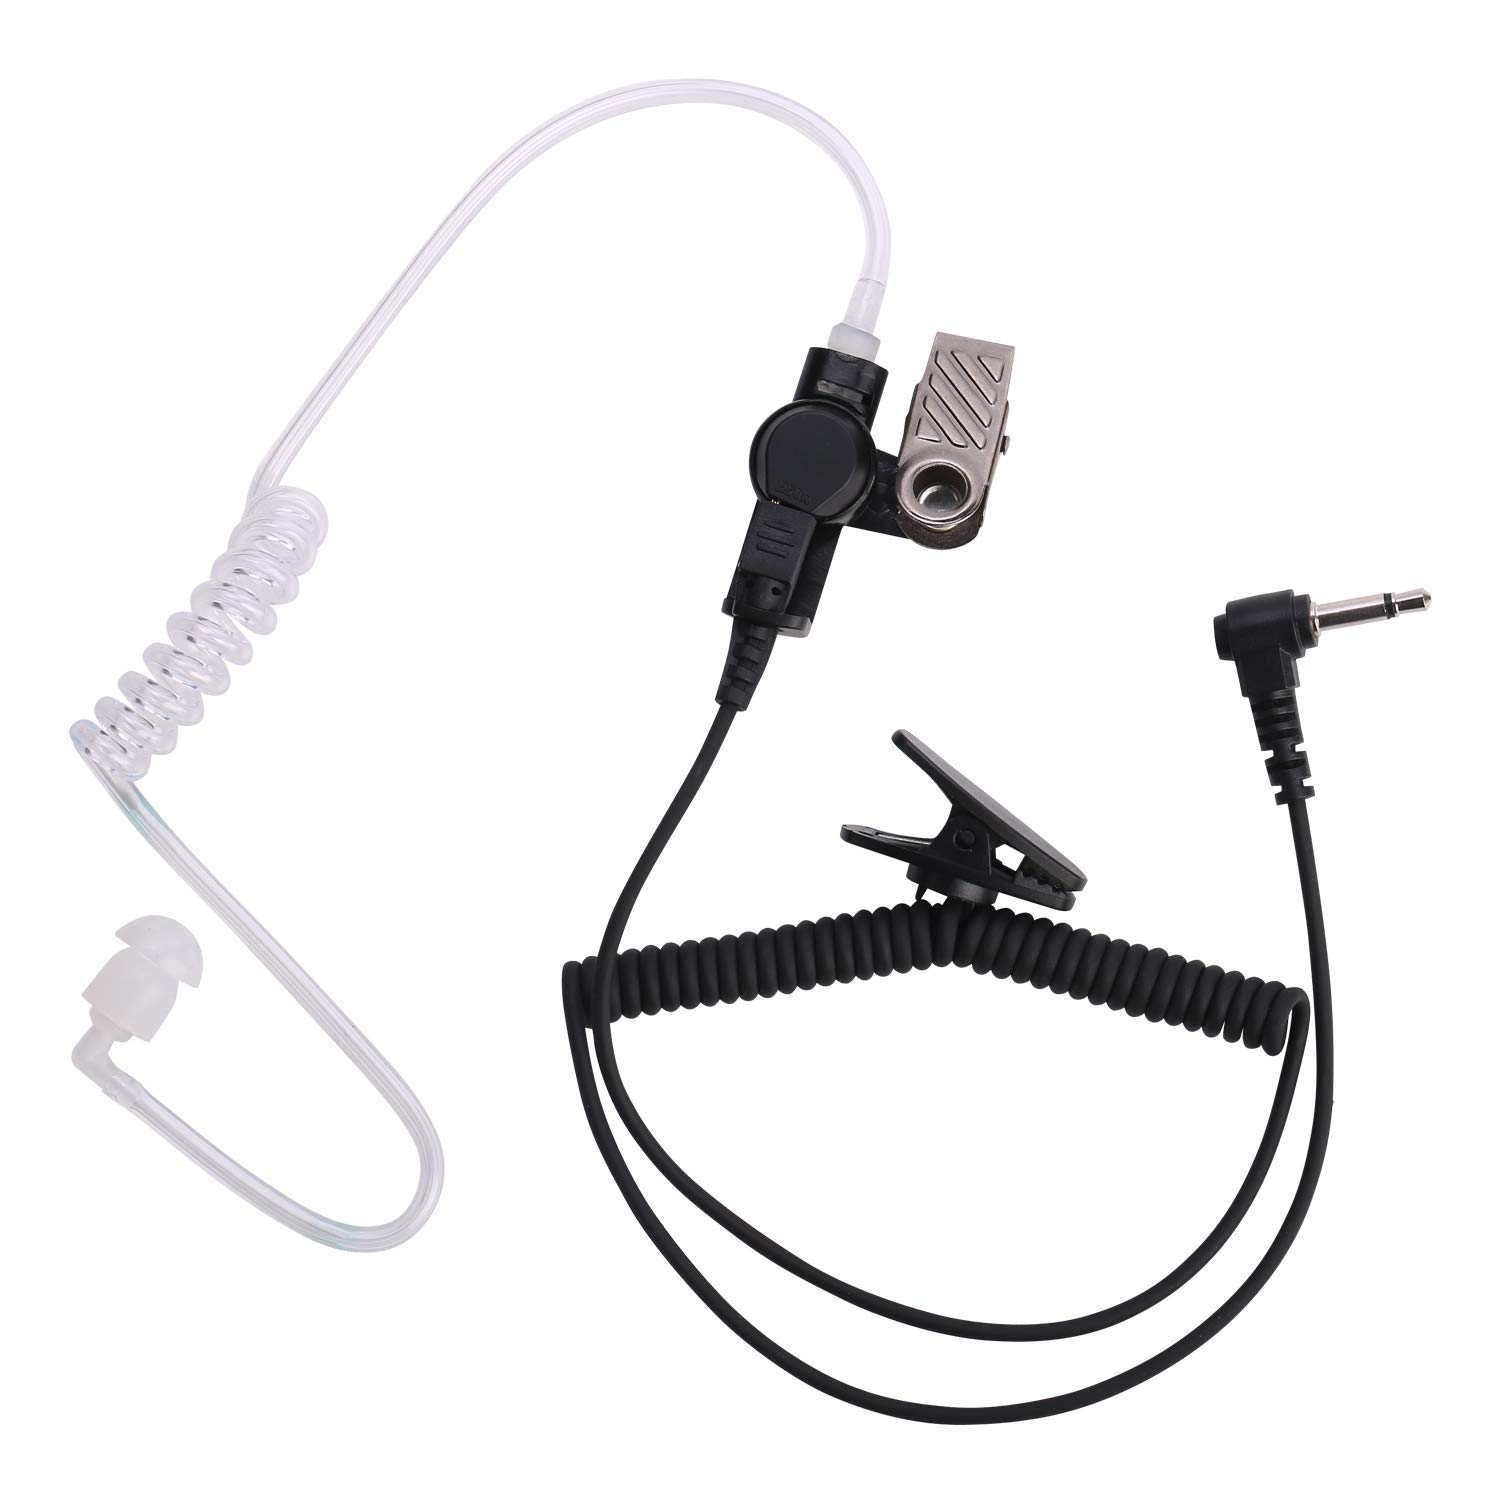 COISOUND Two Way Radio Earpiece Noise Canceling Transparent Security Headset Walkie Talkie Headphone 3.5mm pin Receiver/Listen ONLY for Any Motorola Kenwood ICOM Single Pin Radio